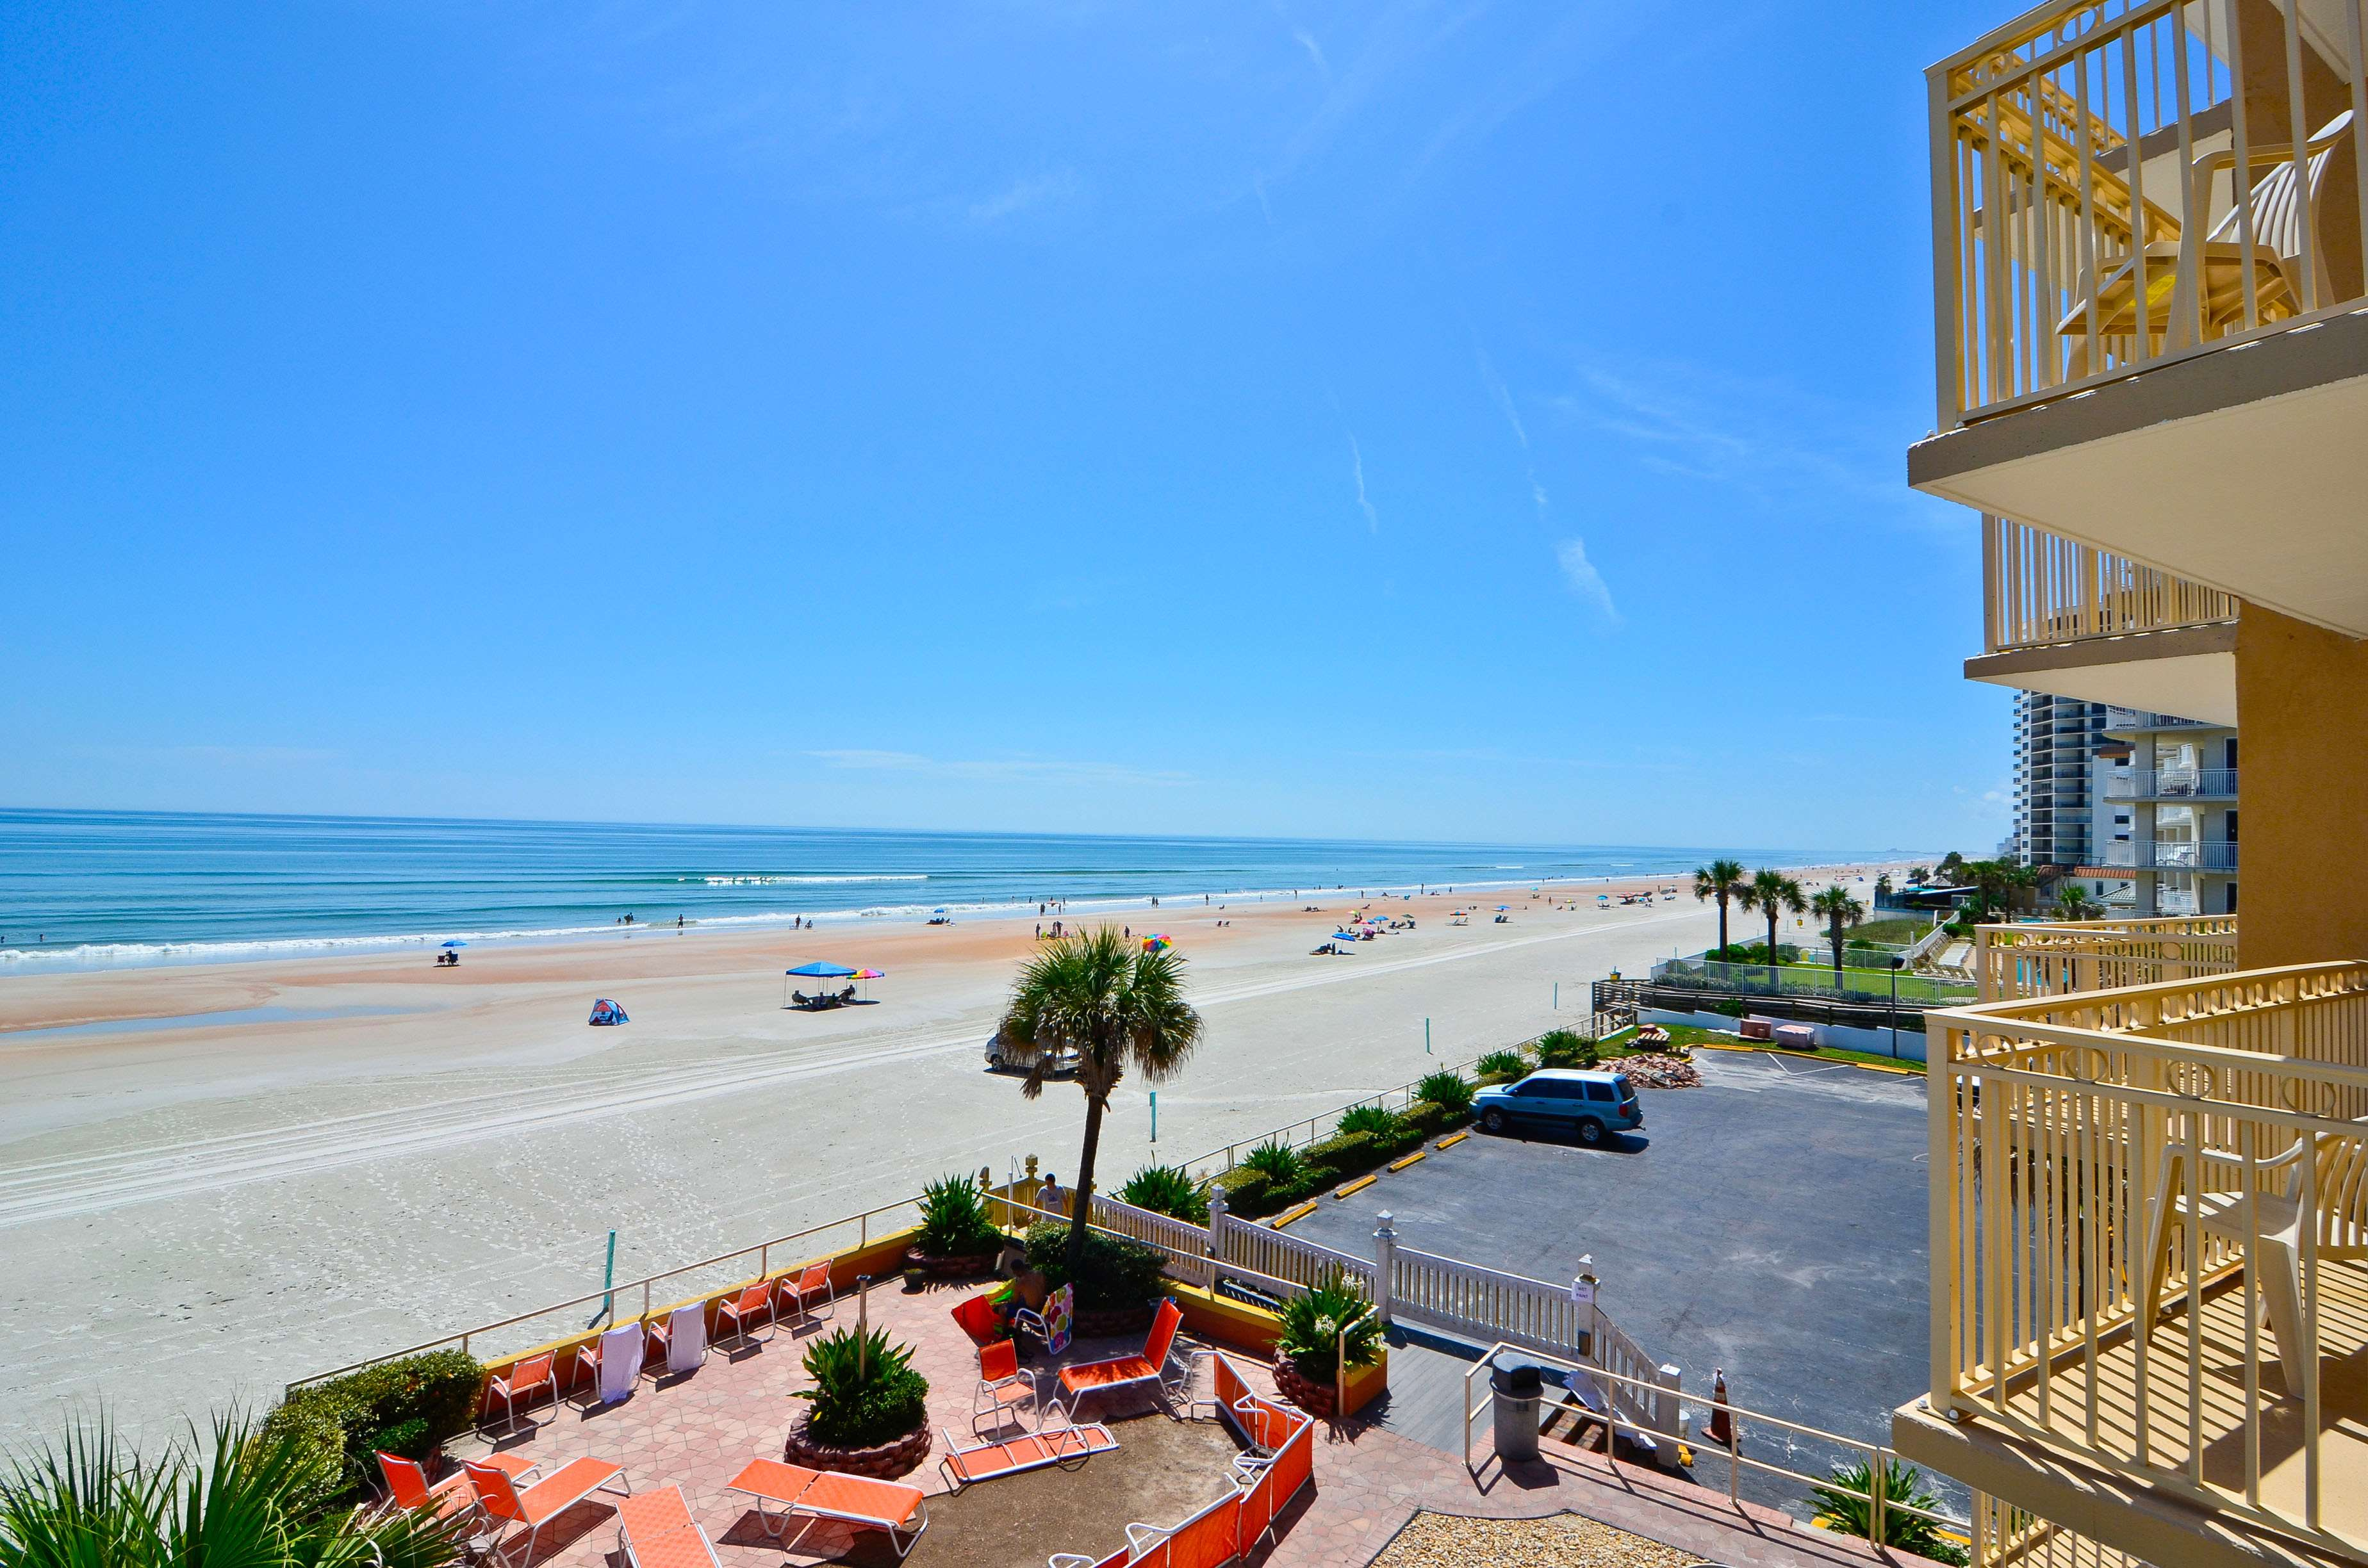 Daytona Beach Attractions Things to Do in Daytona Beach Beach photo daytona beach